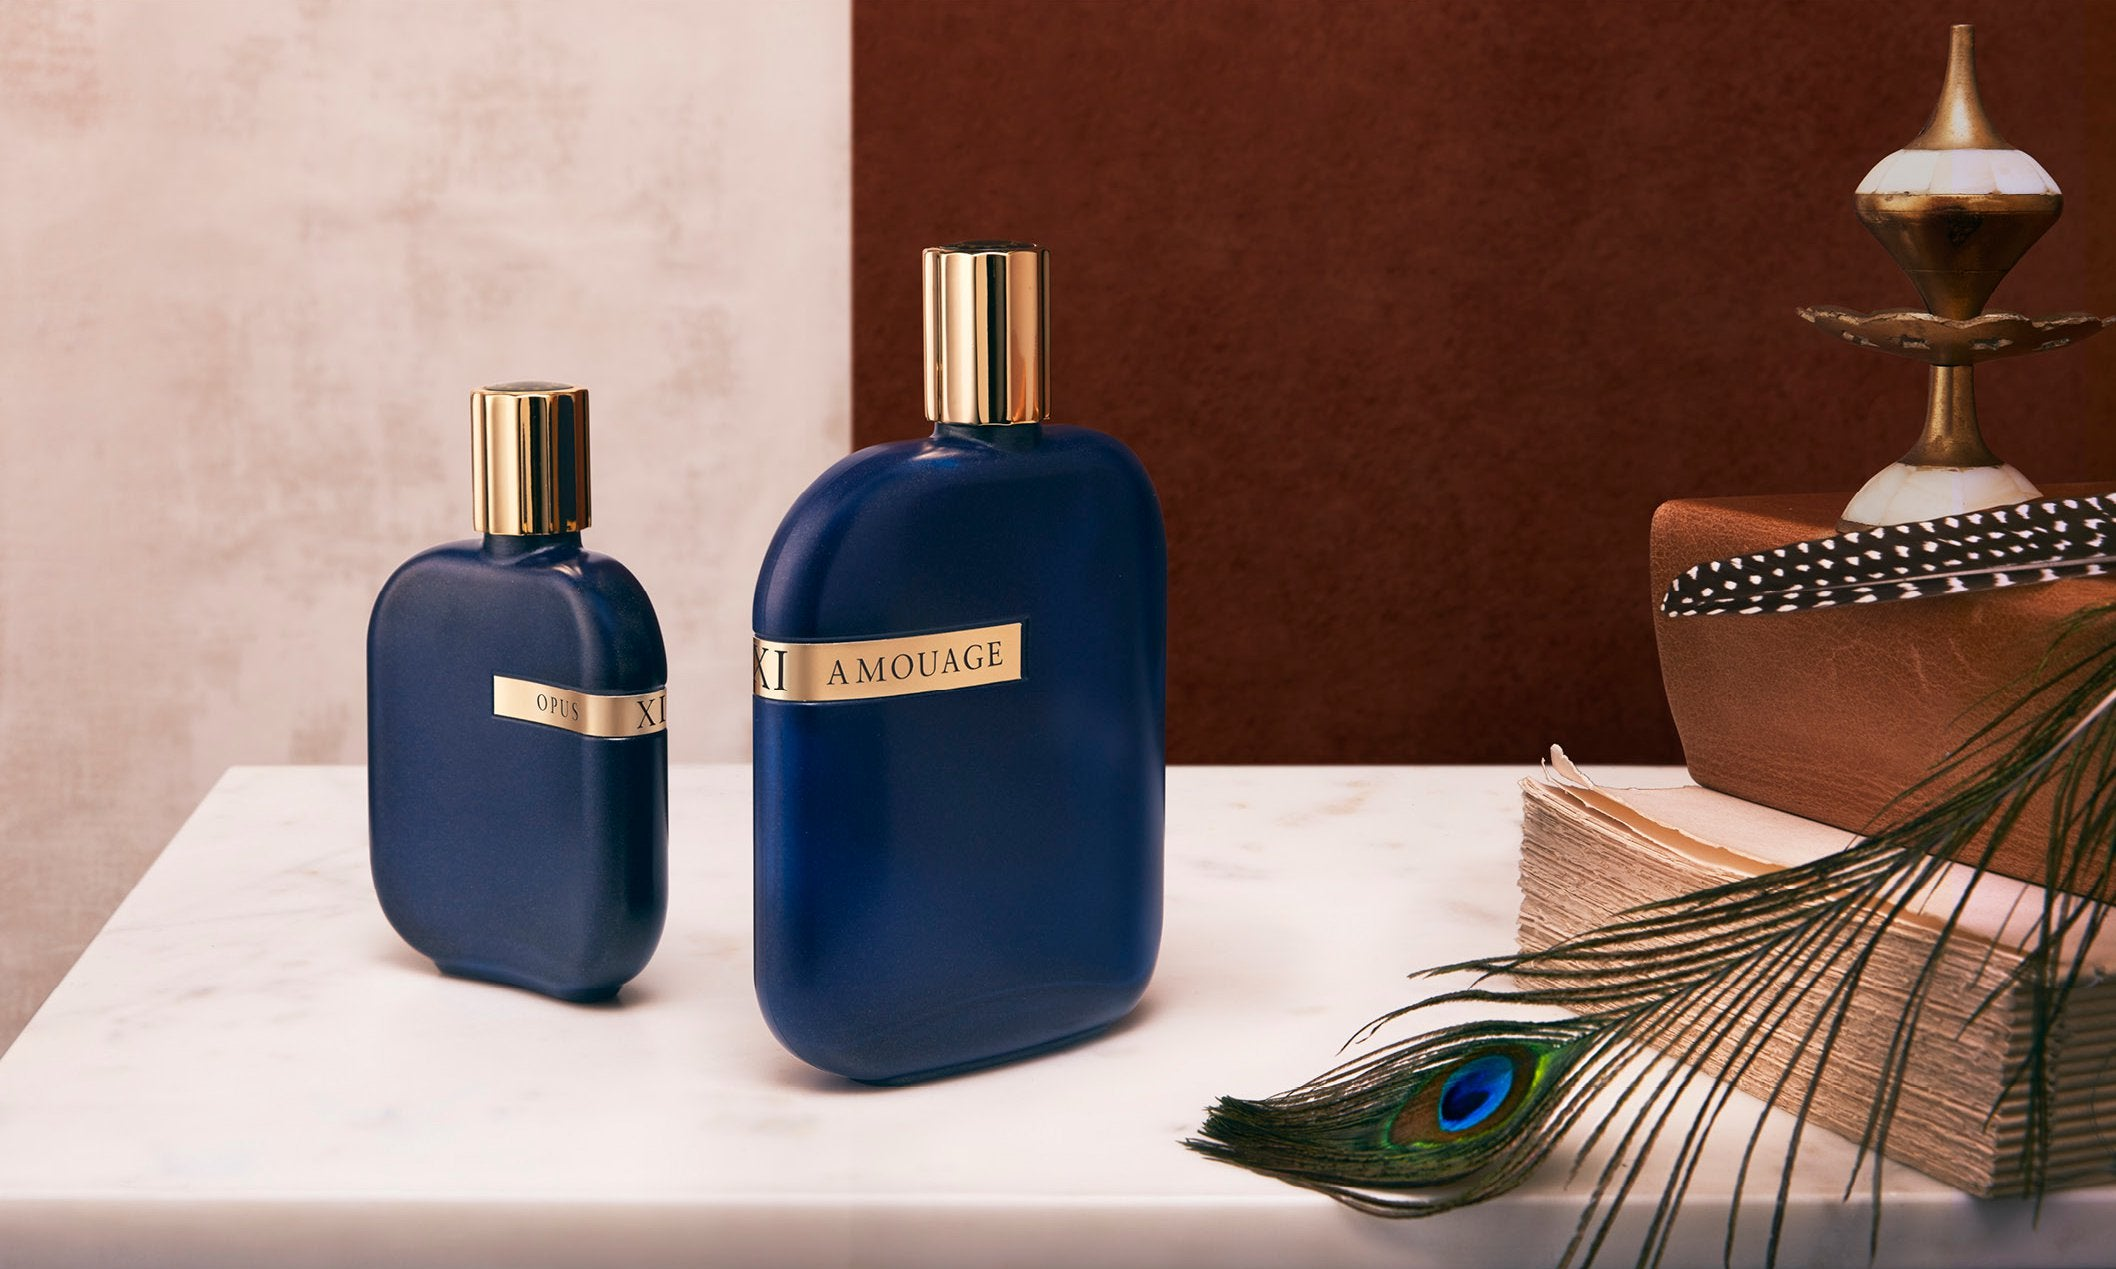 Amouage's Library Collection Opus XI arrives at Agoratopia